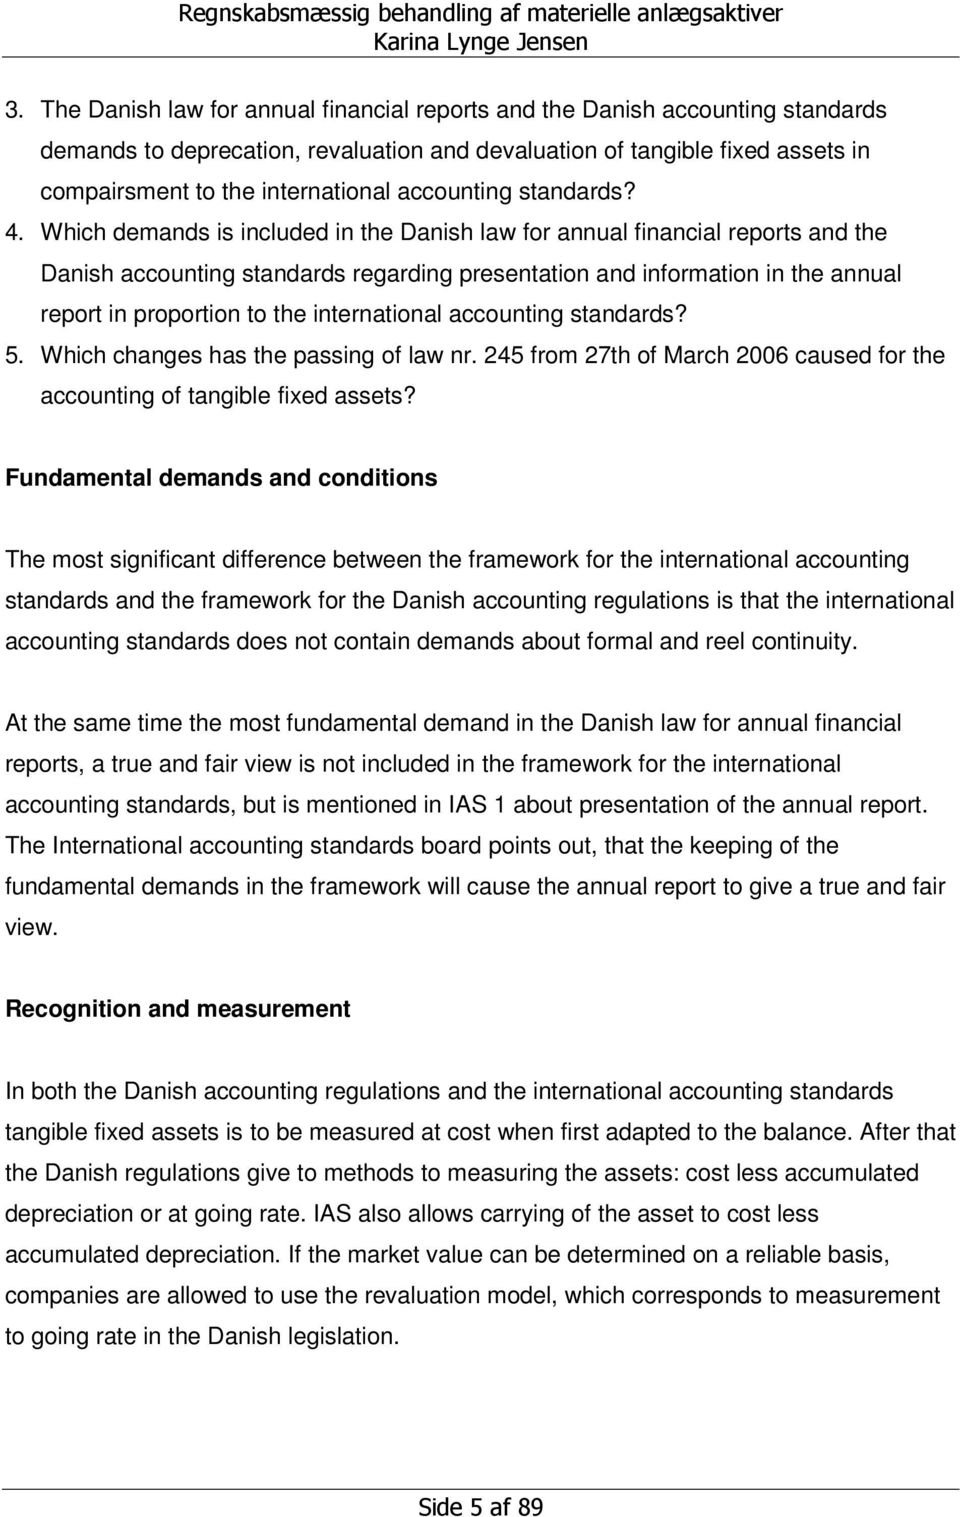 Which demands is included in the Danish law for annual financial reports and the Danish accounting standards regarding presentation and information in the annual report in proportion to the